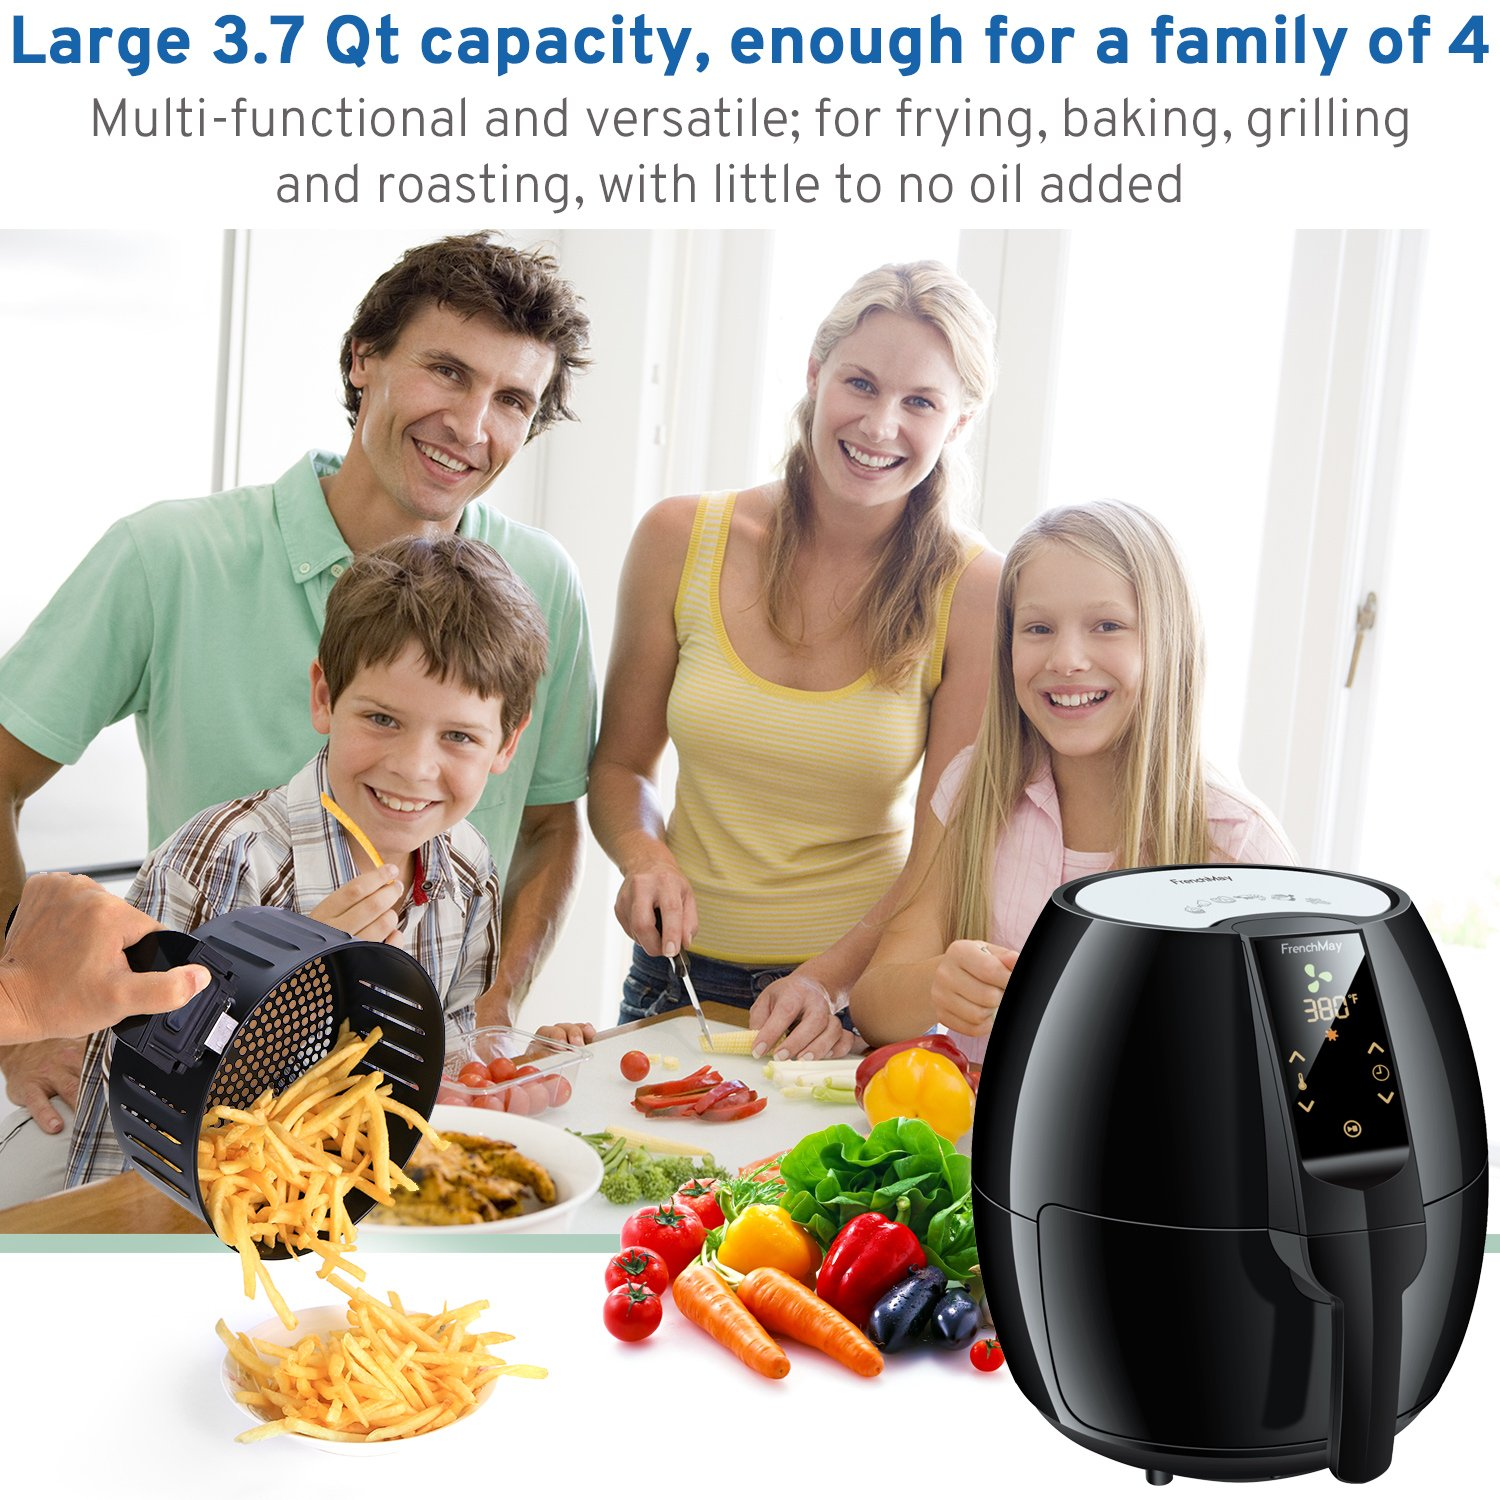 FrenchMay Touch Control Air Fryer, 3.7Qt 1500W, Comes with Recipes Cook Book Black